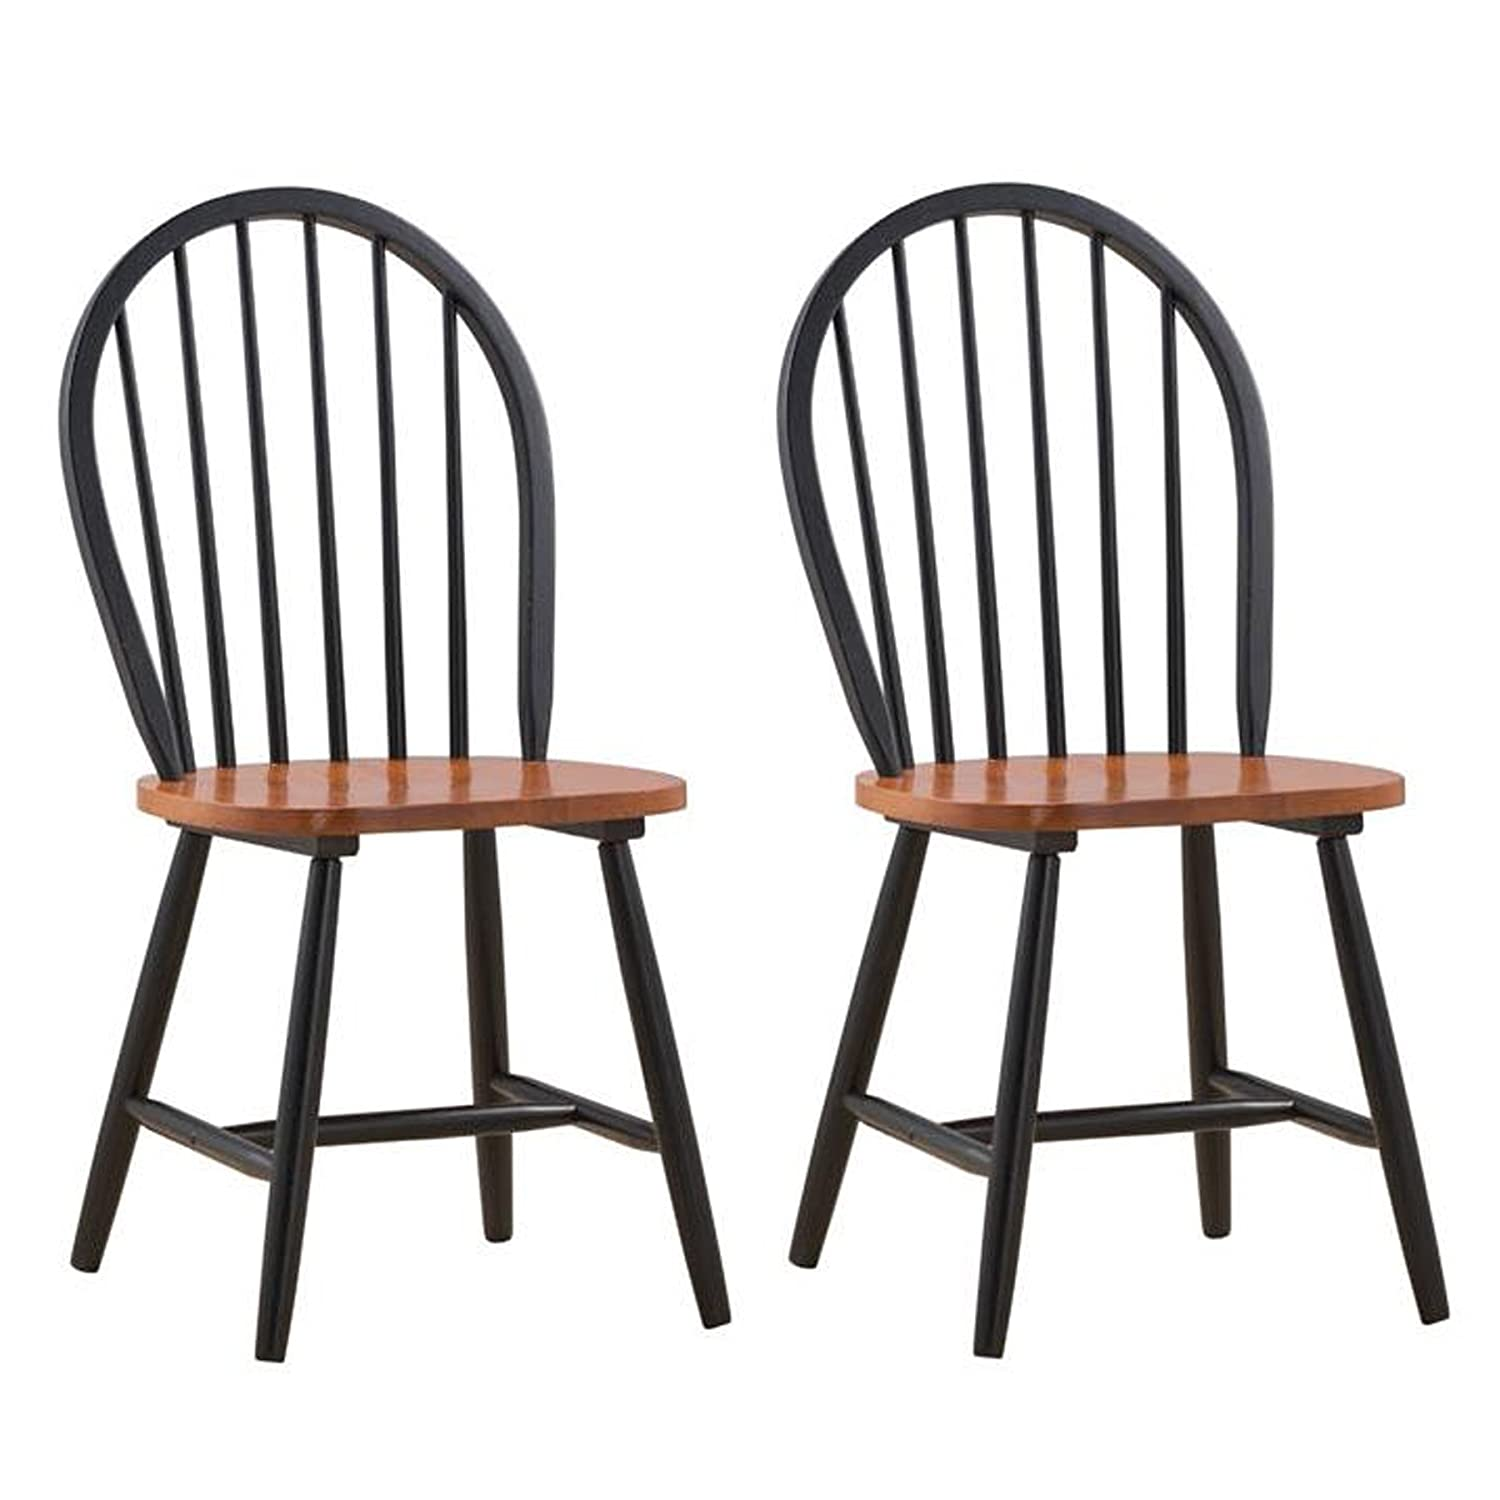 Amazon Boraam Farmhouse Chair Black Cherry Set of 2